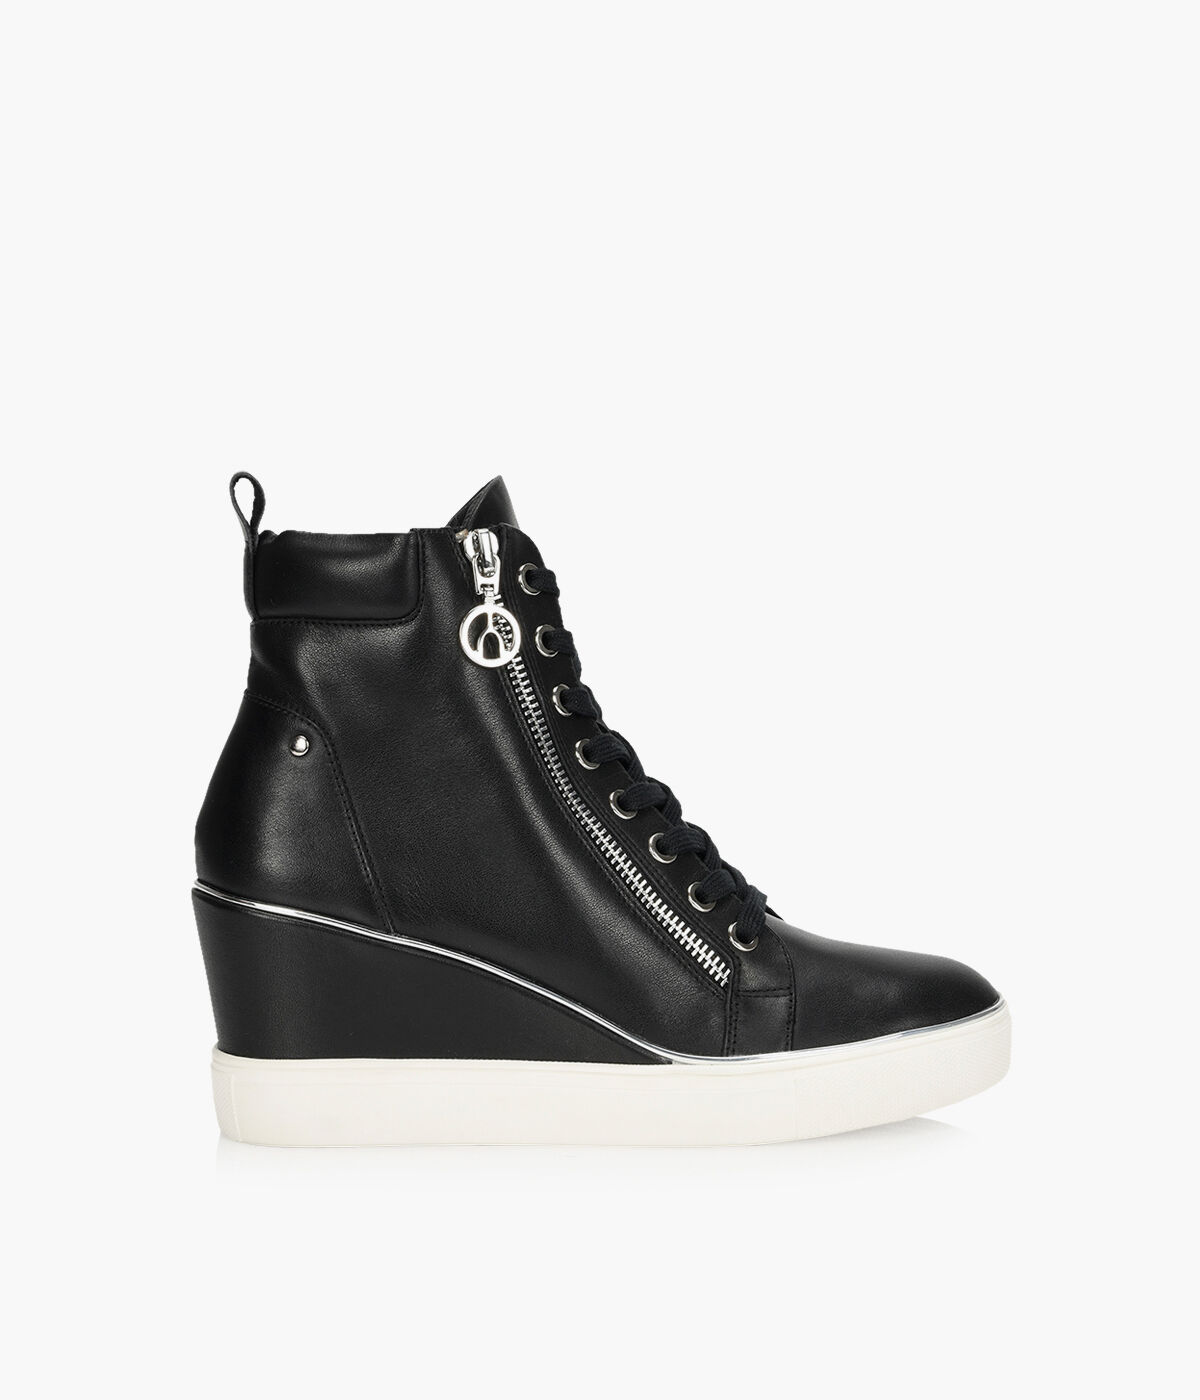 THE WISHBONE COLLECTION NELLY - Black